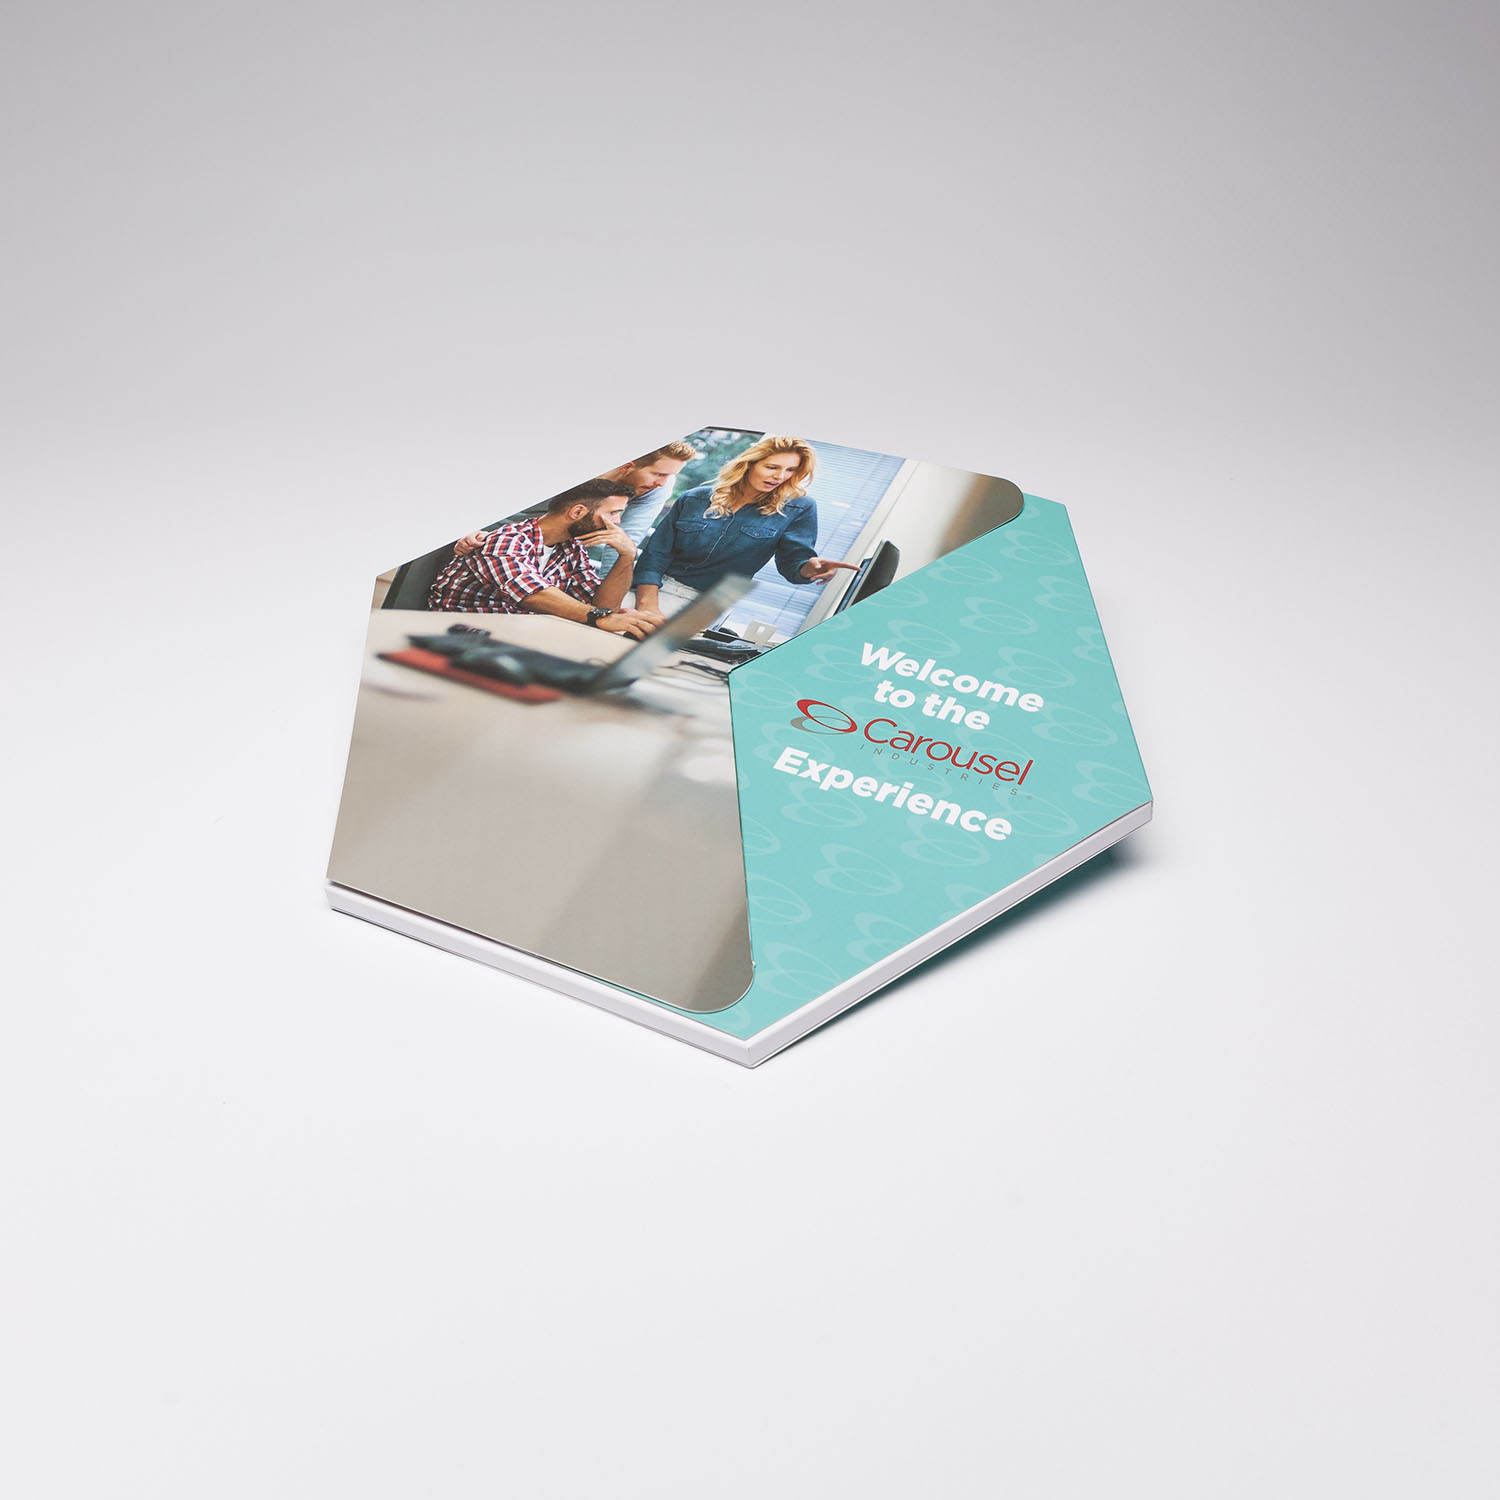 Our Hexagon Video Brochure is an example of a custom job we had the opportunity to run